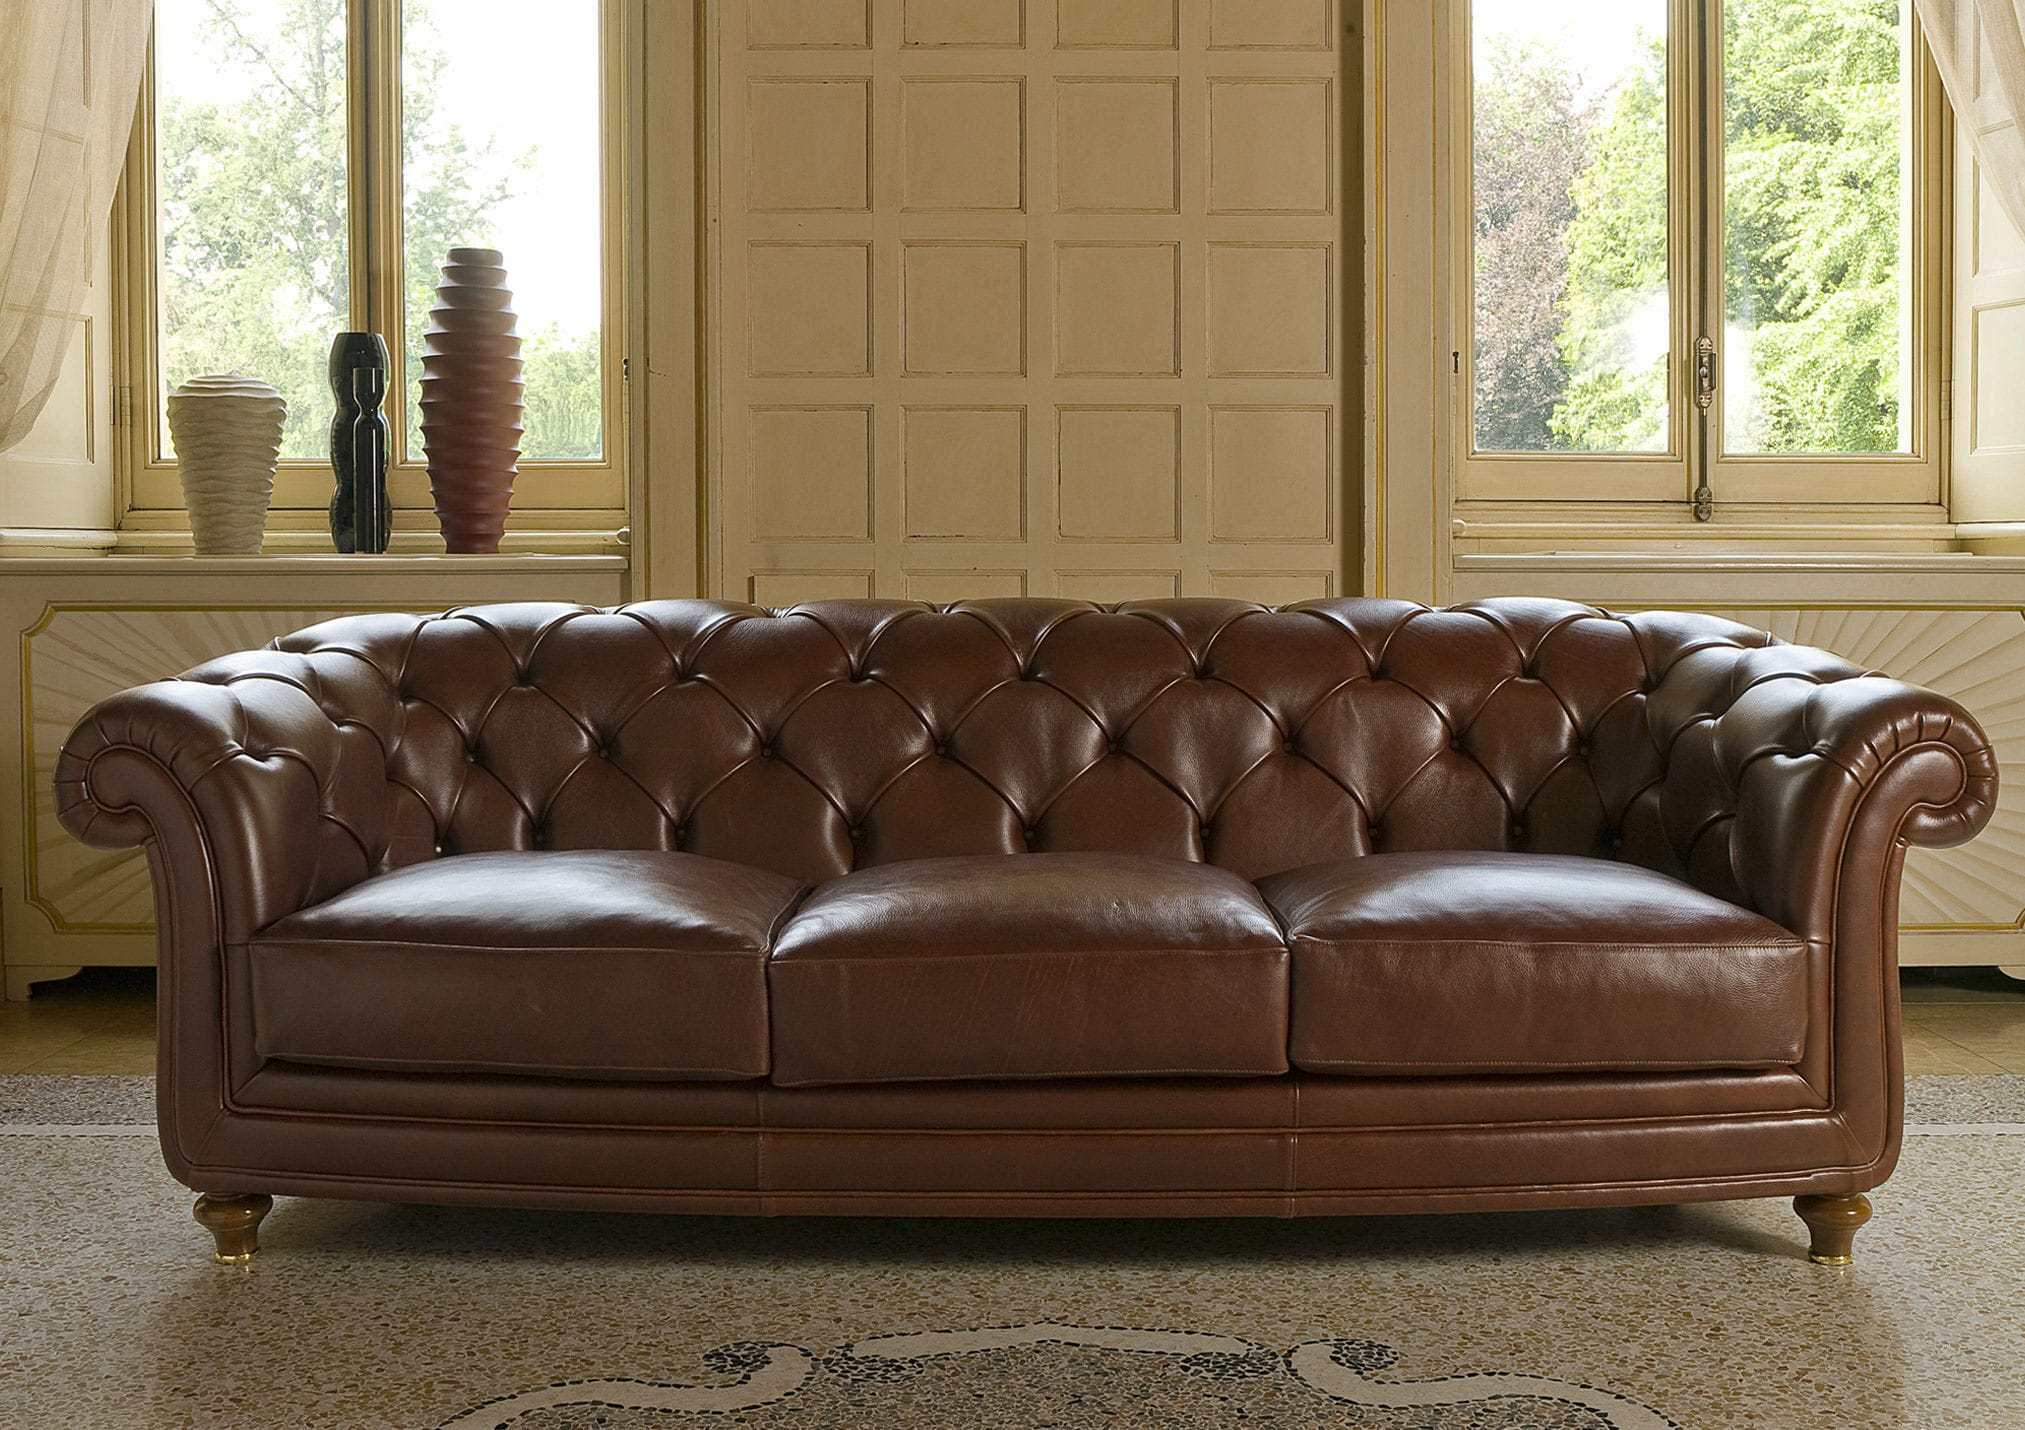 Chesterfield Sofa Leather Fabric 3 Seater Oxford